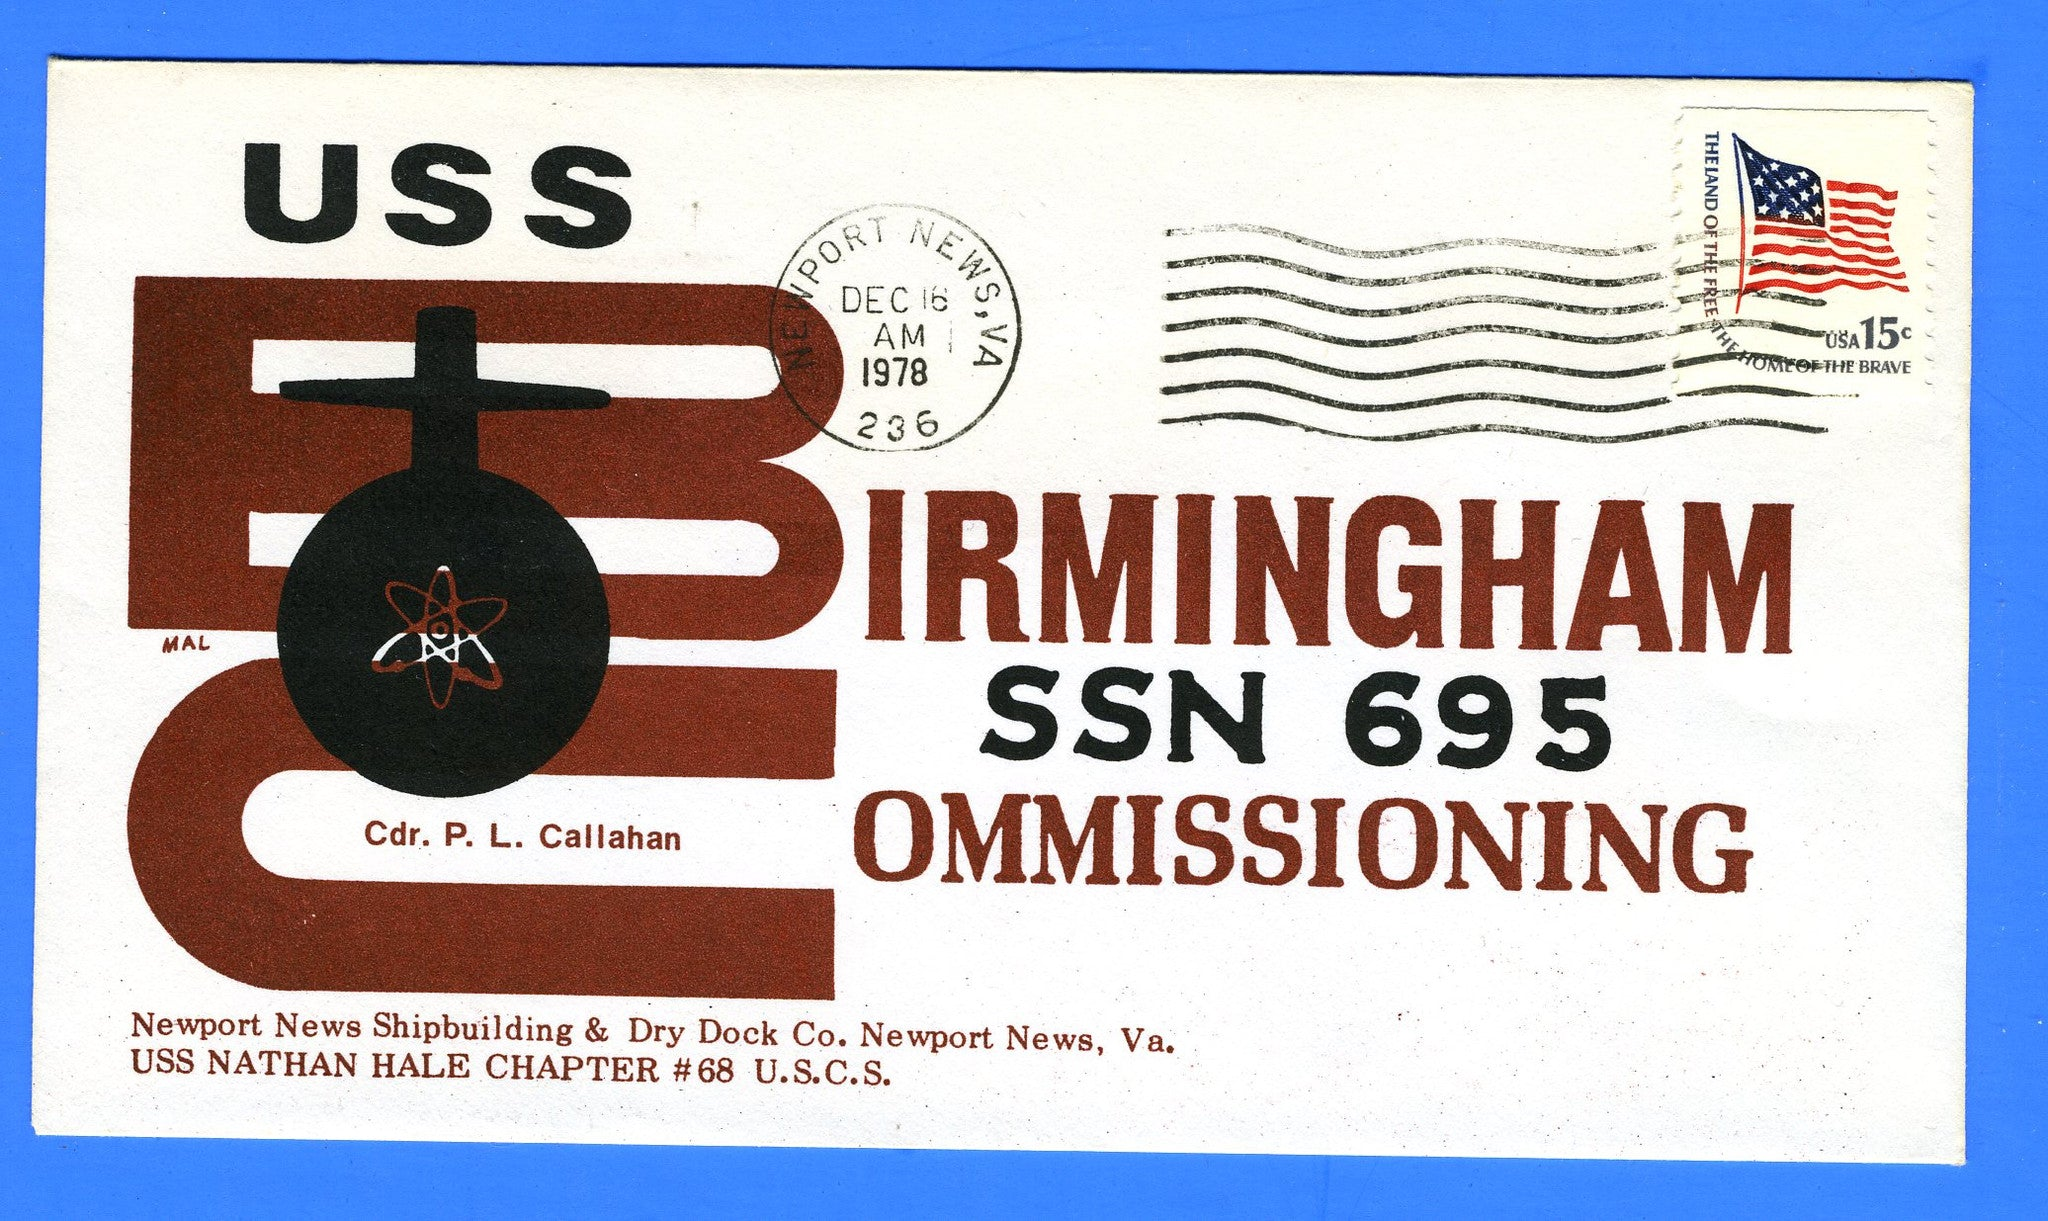 USS Birmingham SSN-695 Commissioning December 16, 1978